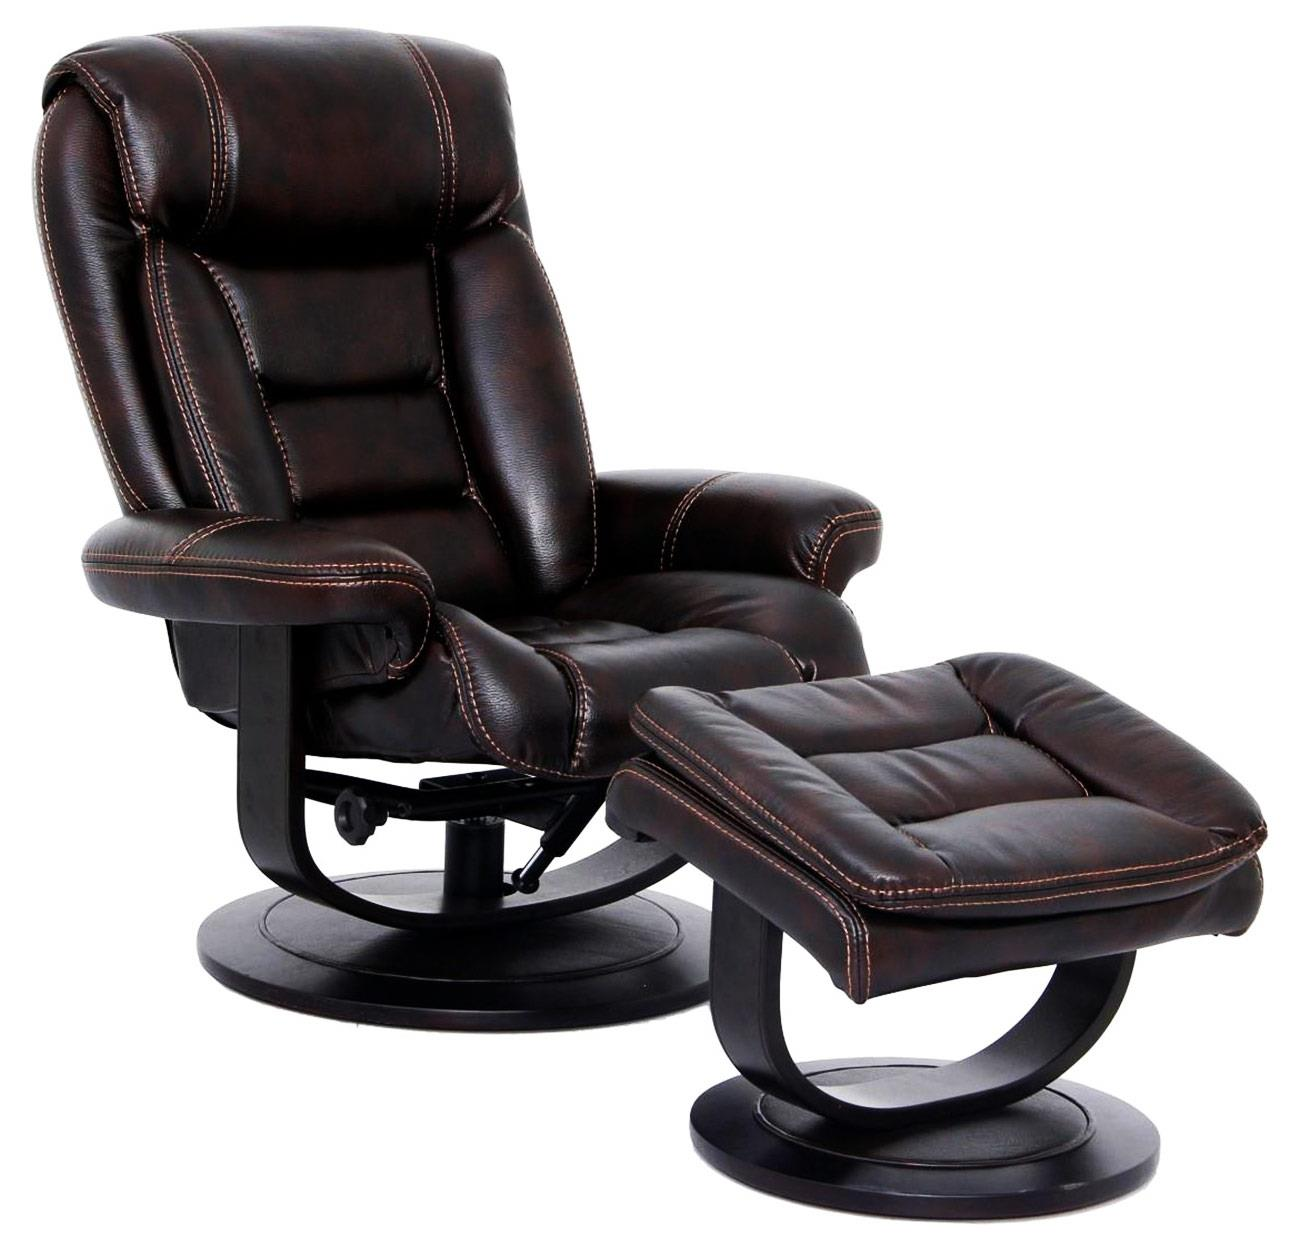 Parker Living Triton Swivel Recliner and Ottoman - Item Number MTRI-212S-NU  sc 1 st  Rotmans & Triton Swivel Recliner and Ottoman: Nutmeg - Rotmans - Chair ... islam-shia.org